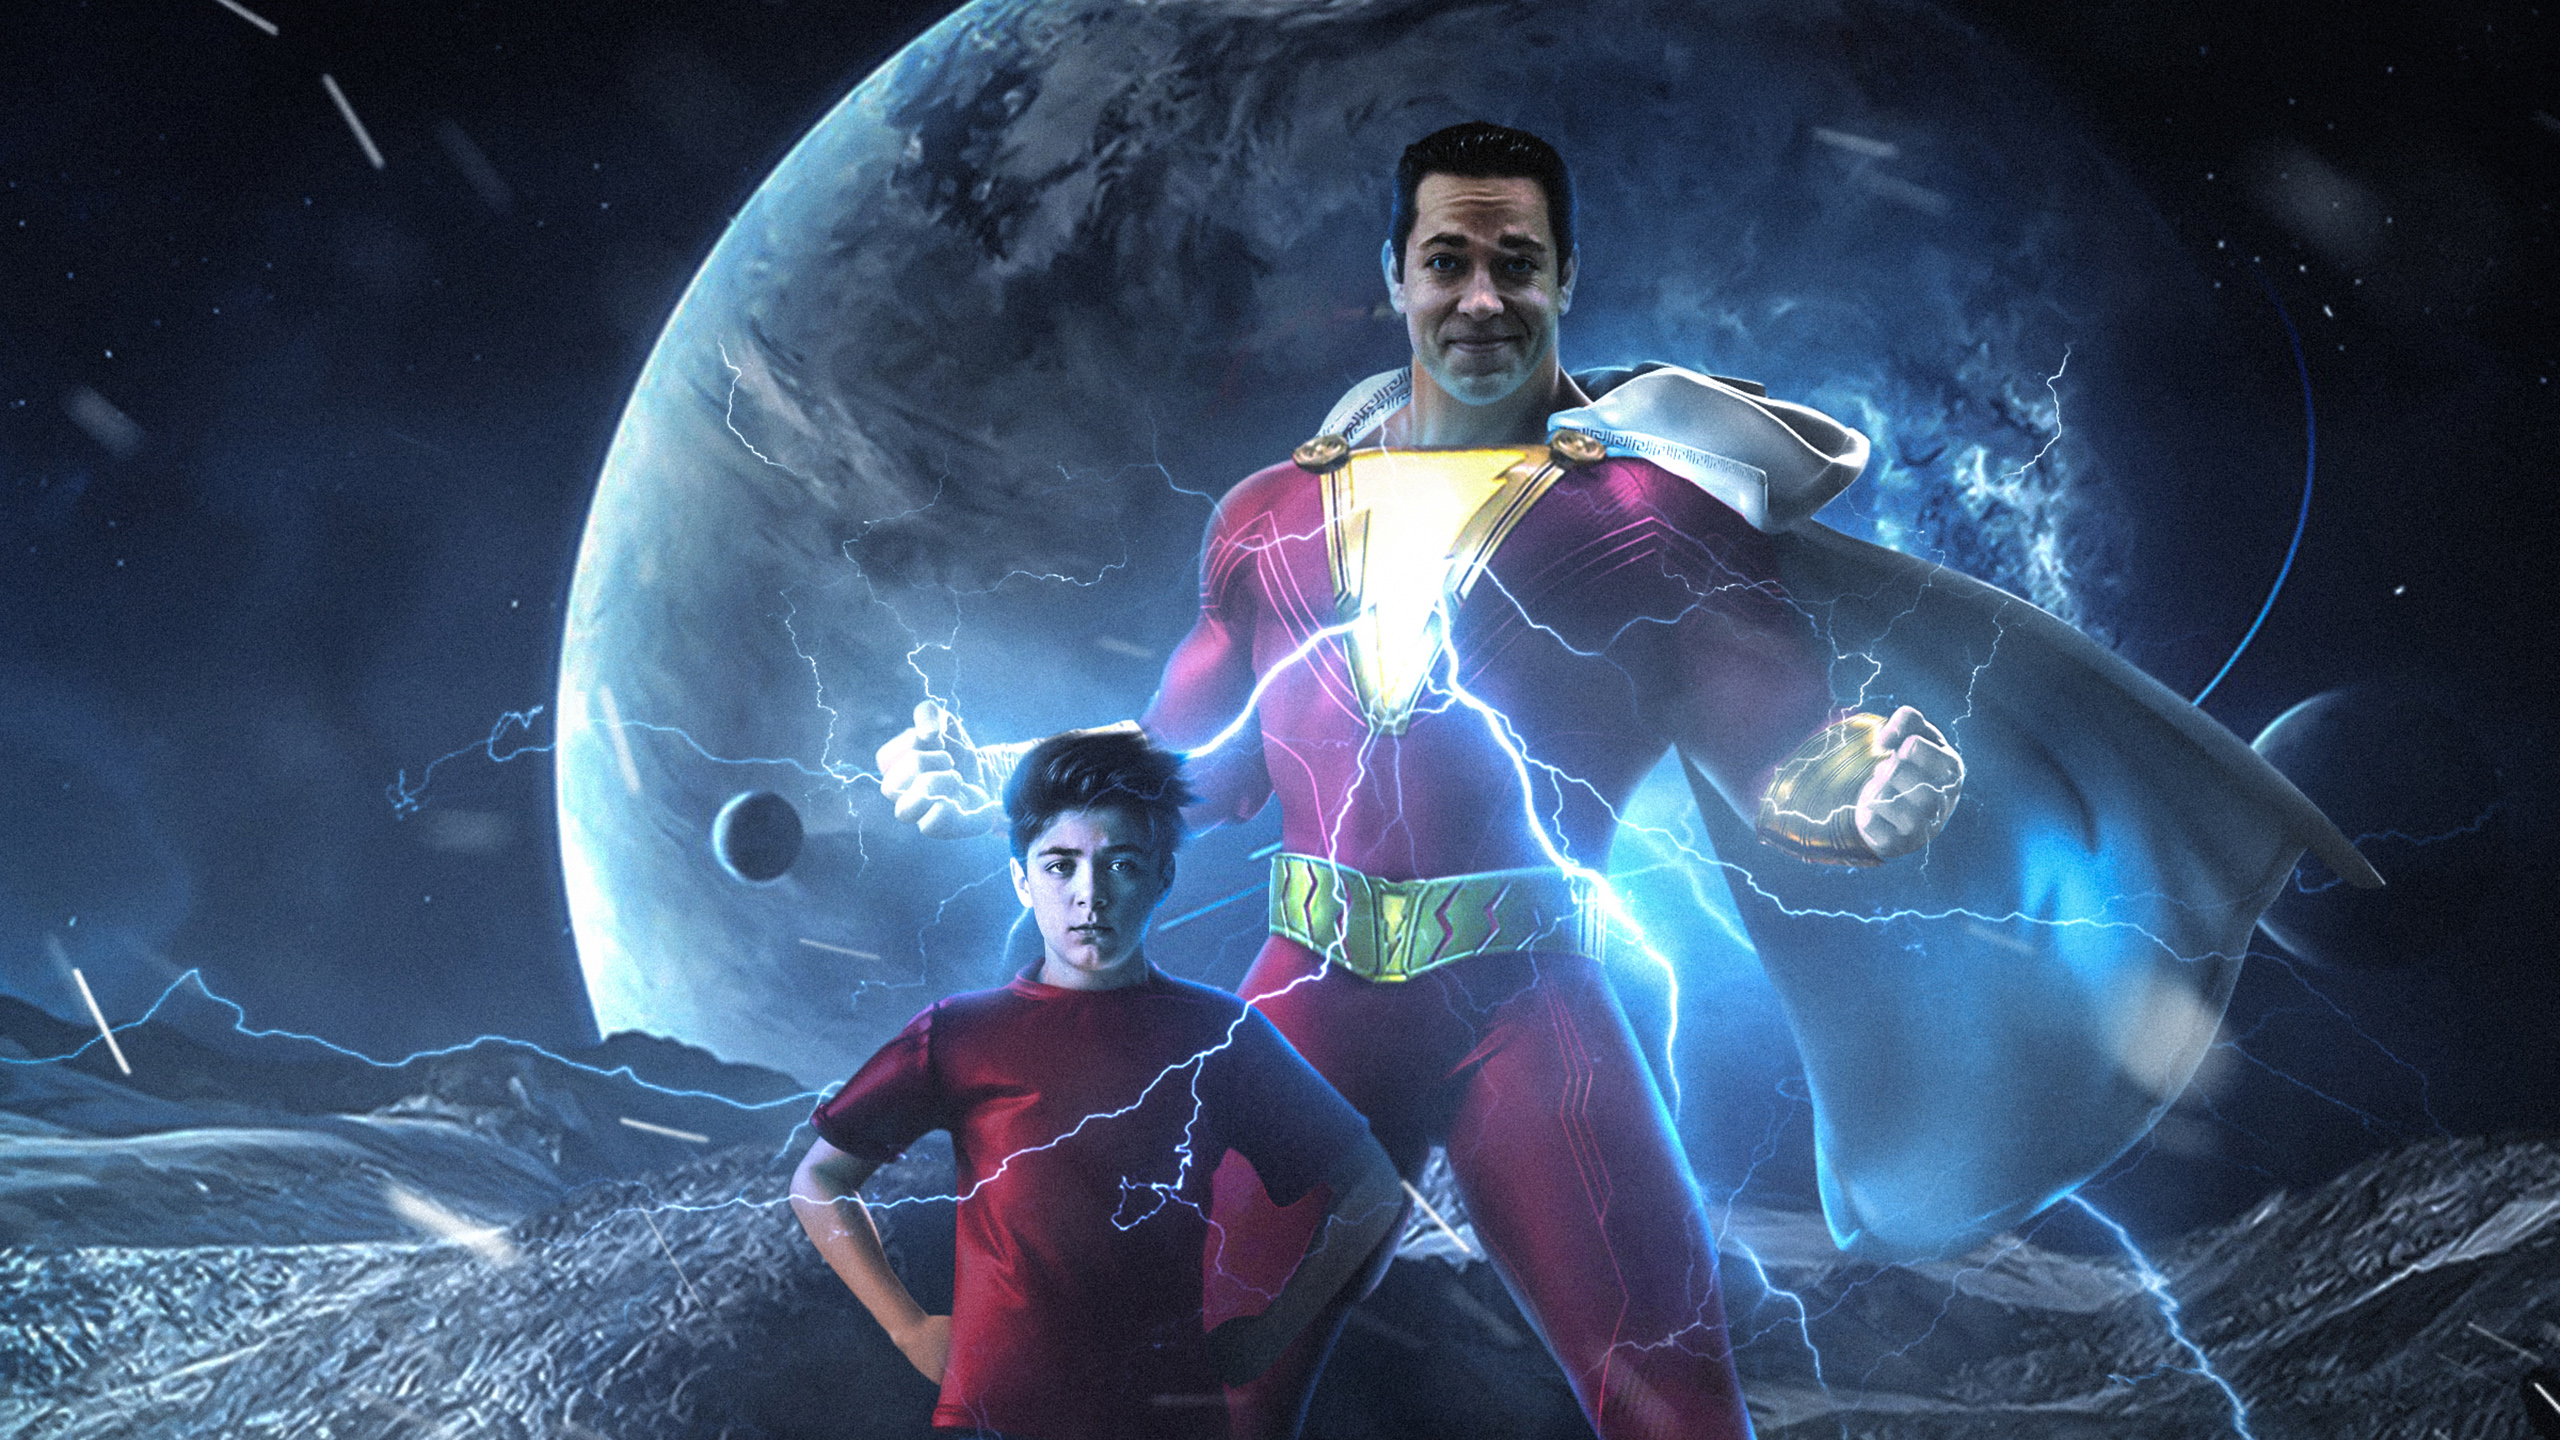 Shazam 2019 5k, HD Movies, 4k Wallpapers, Images